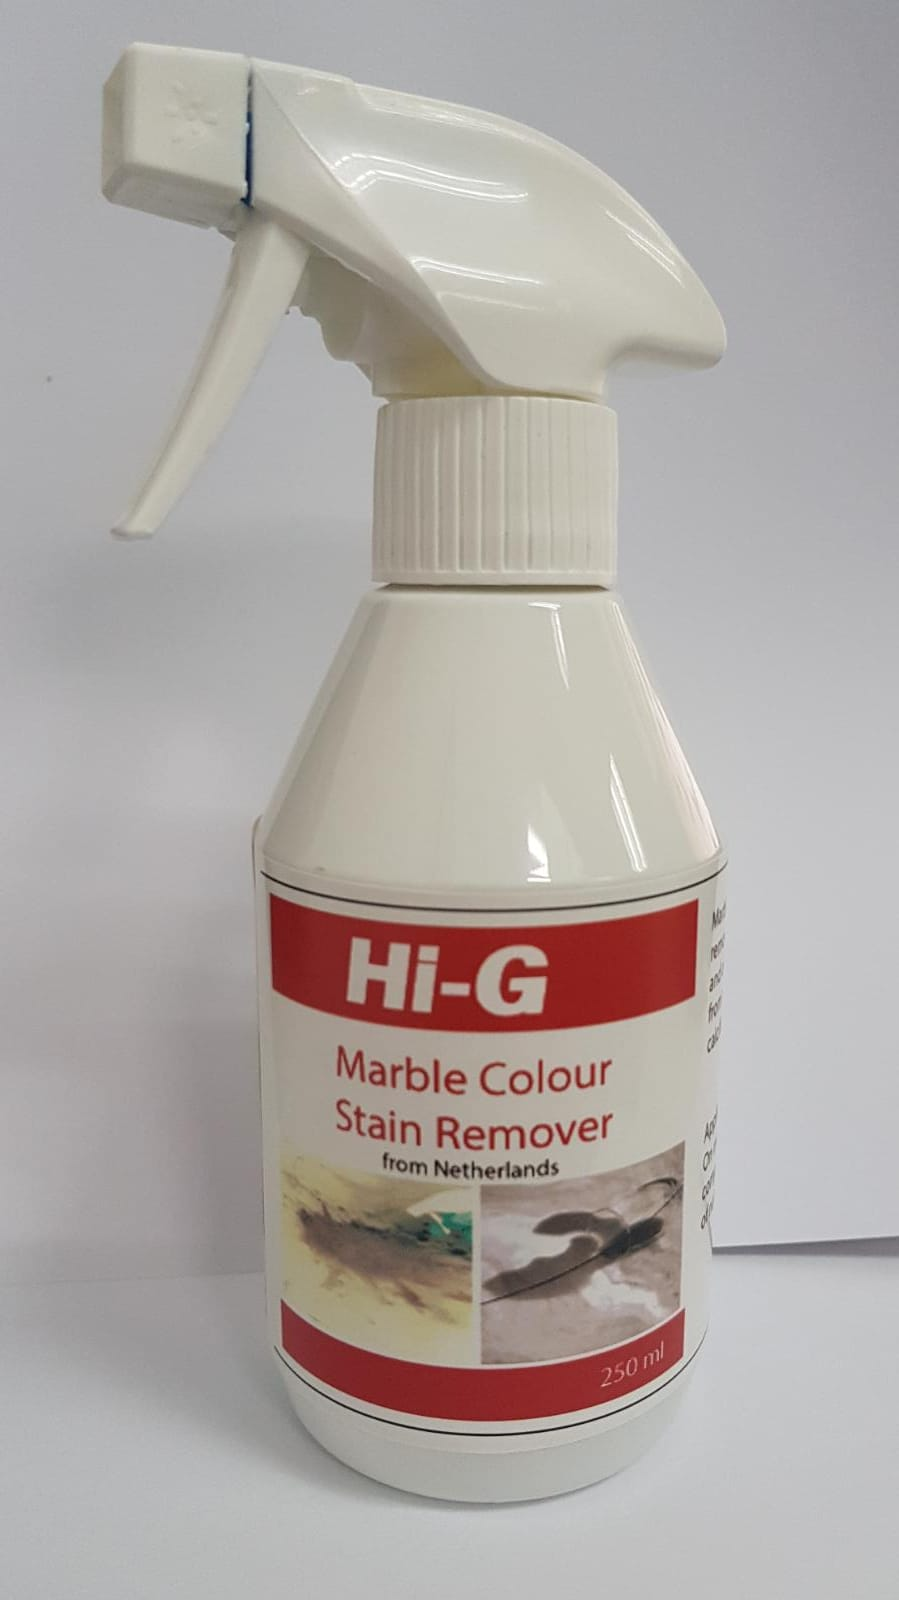 Hi-G Marble Colour Stain Remover 250ml